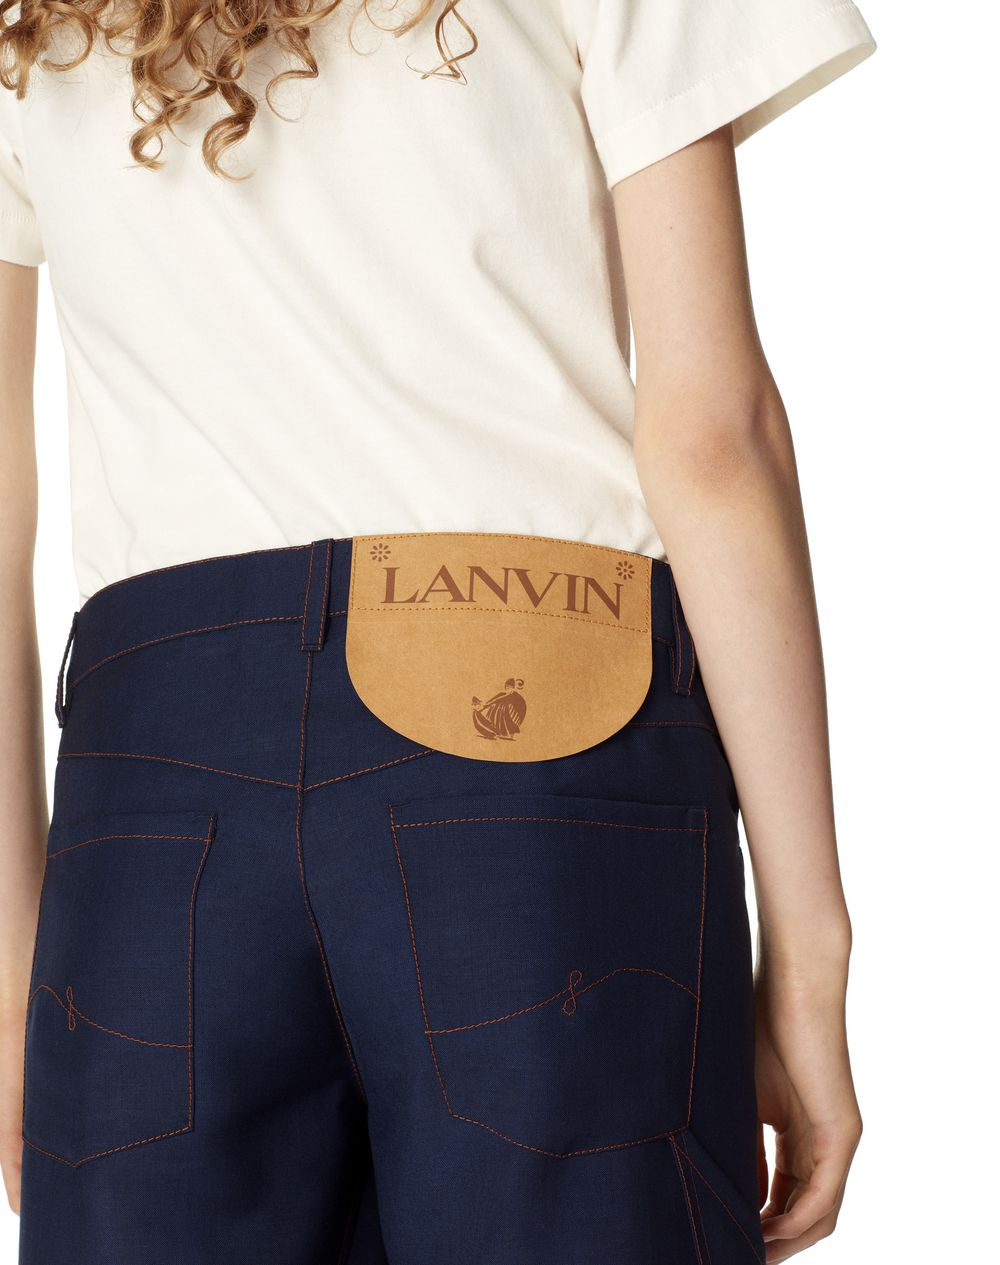 TWISTED STITCHES 7/8 DENIM TROUSERS IN WOOL AND MOHAIR - Lanvin